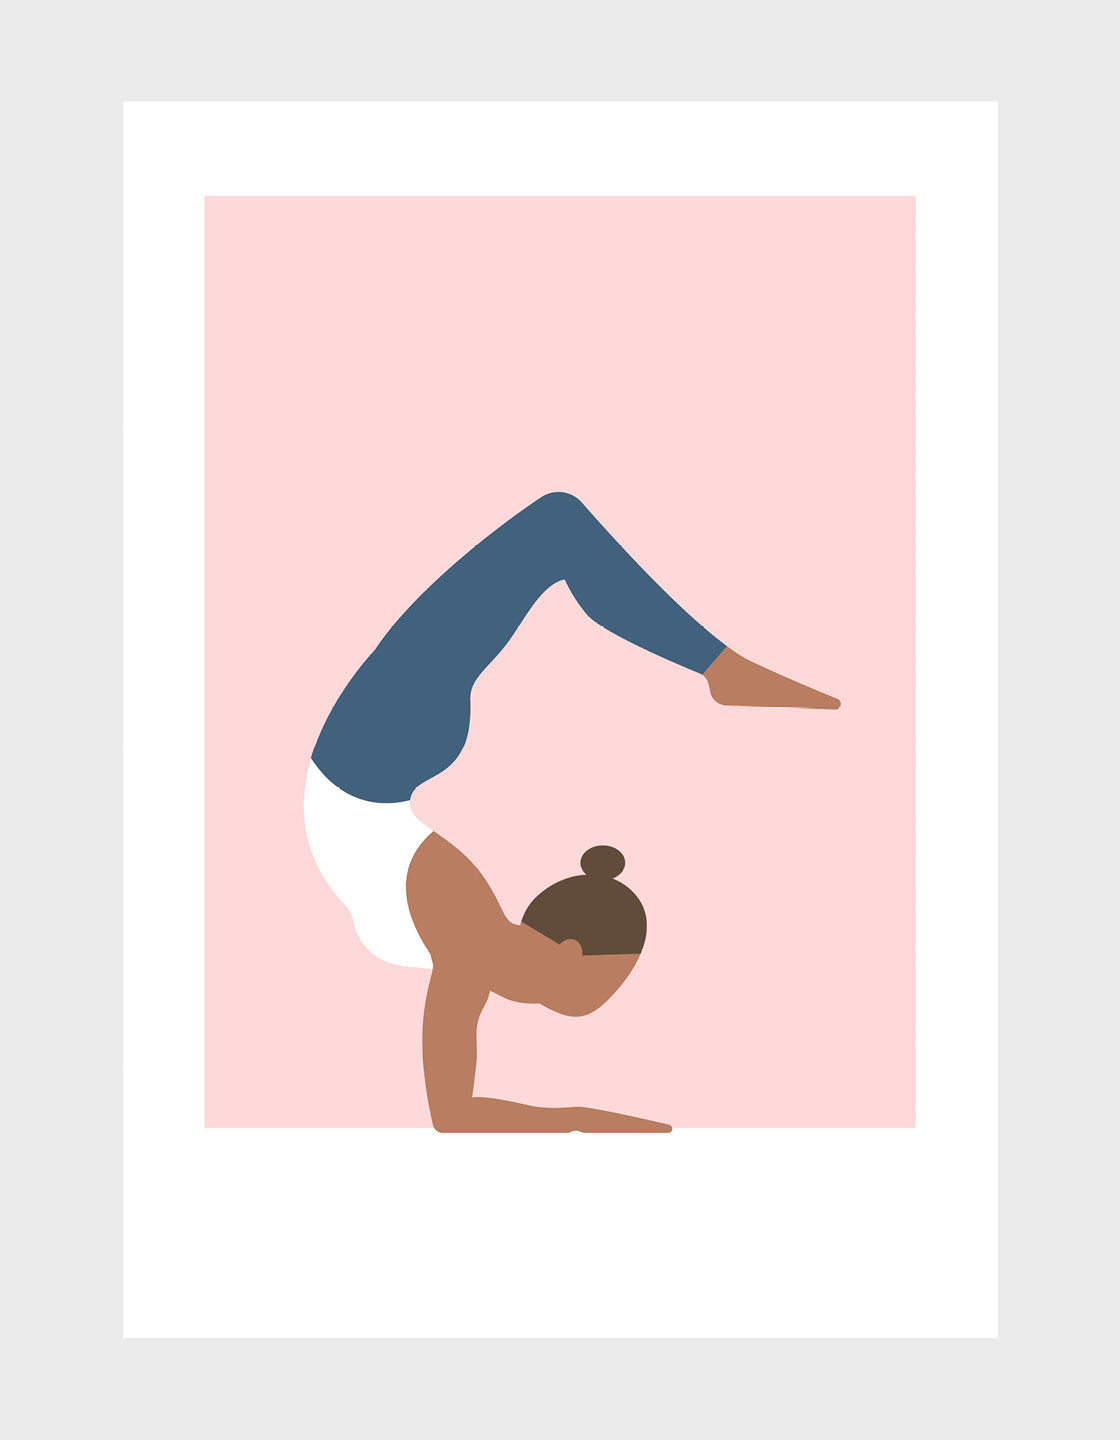 Scorpion pose yoga art print on pink background